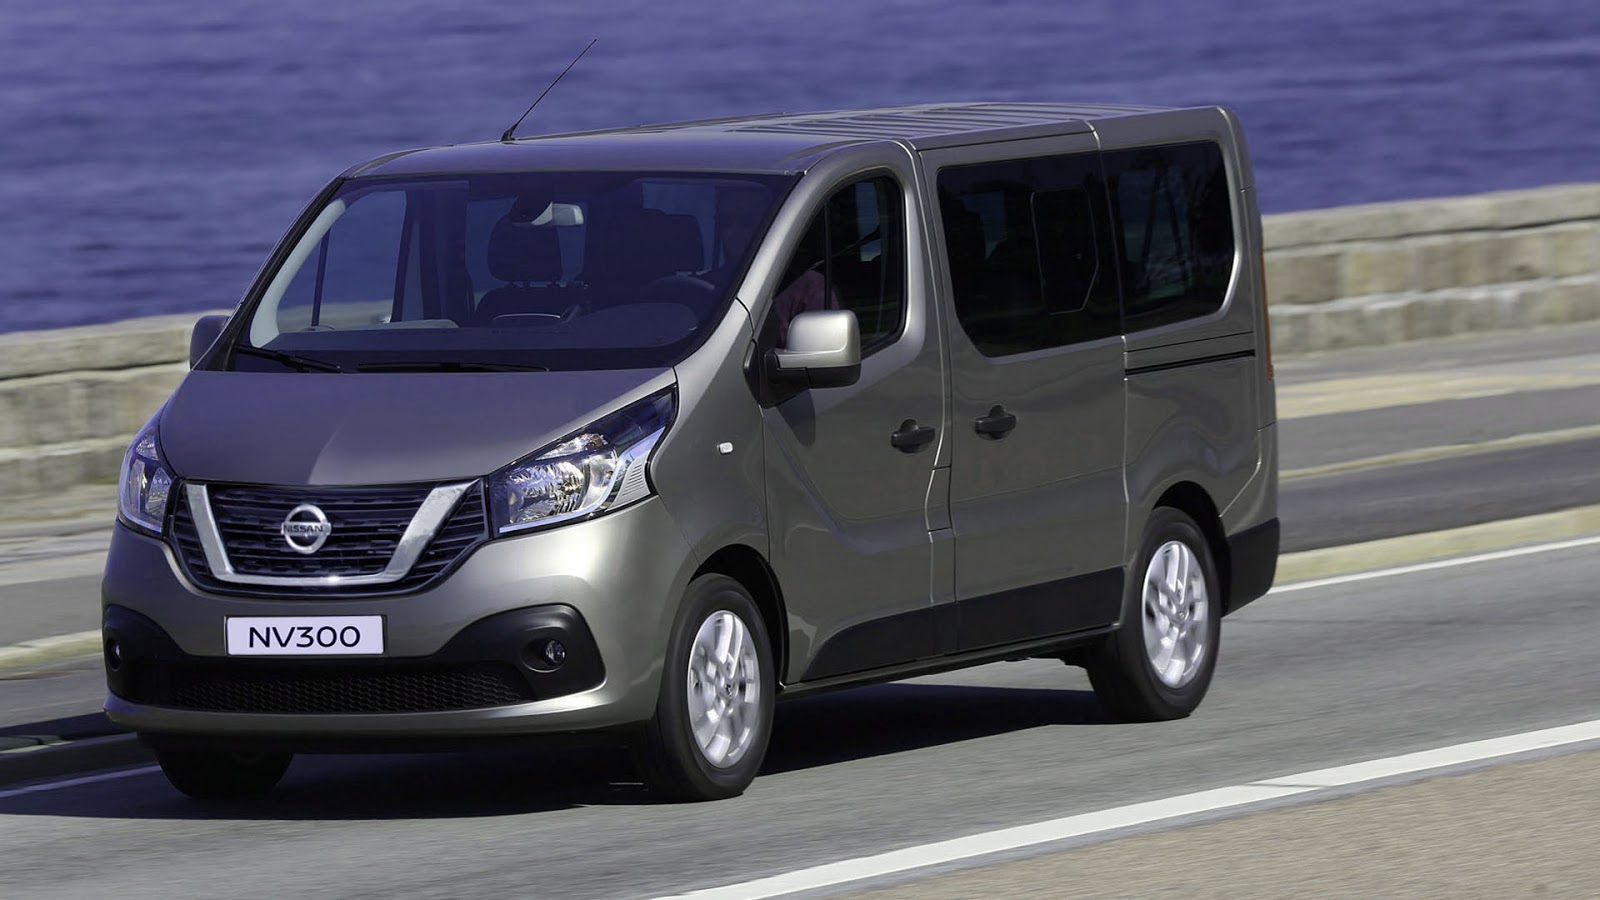 Autonews Exclusive The Nissan Nv300 Will Be Replacing The